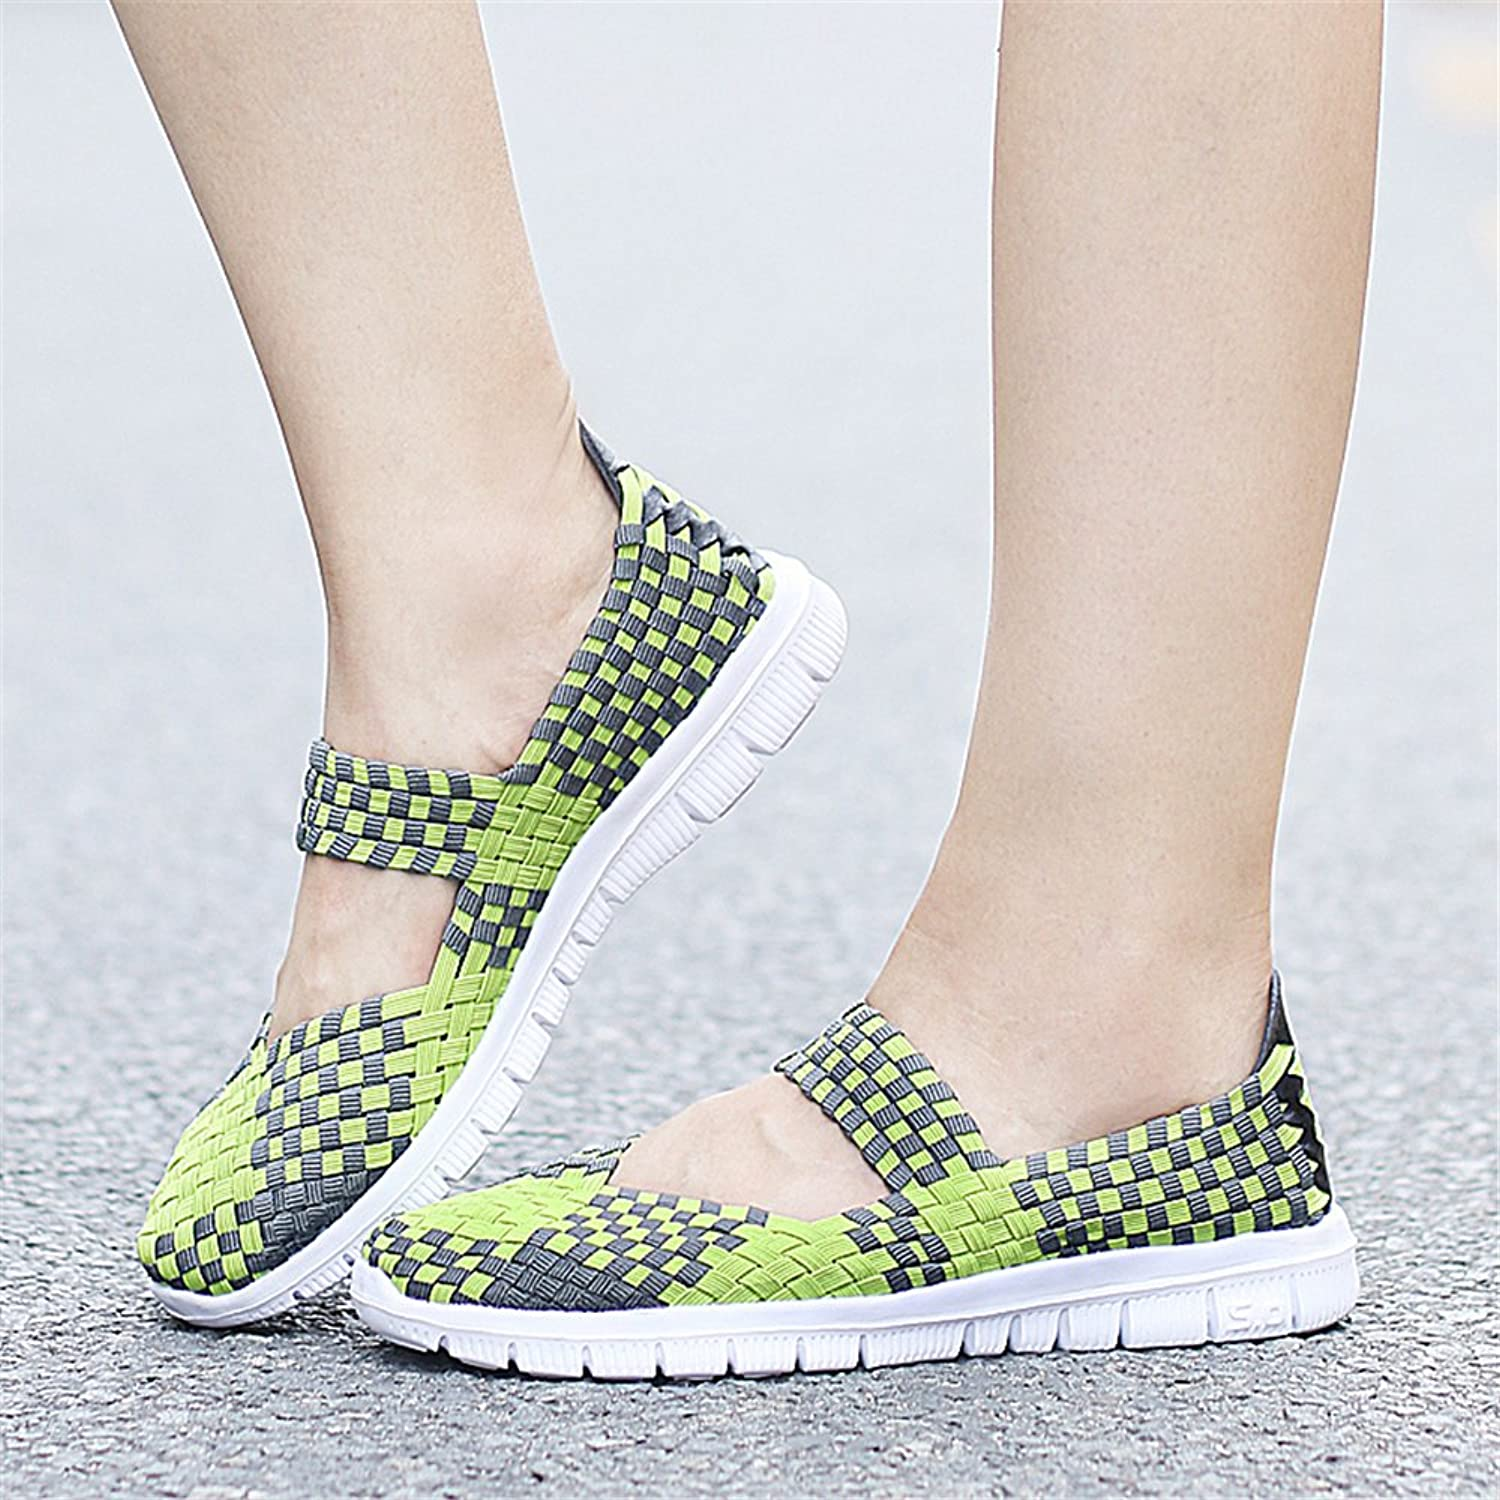 YMY Women's Woven Sneakers Casual Lightweight Sneakers - Breathable Running Shoes B07DXQFJHH Parent